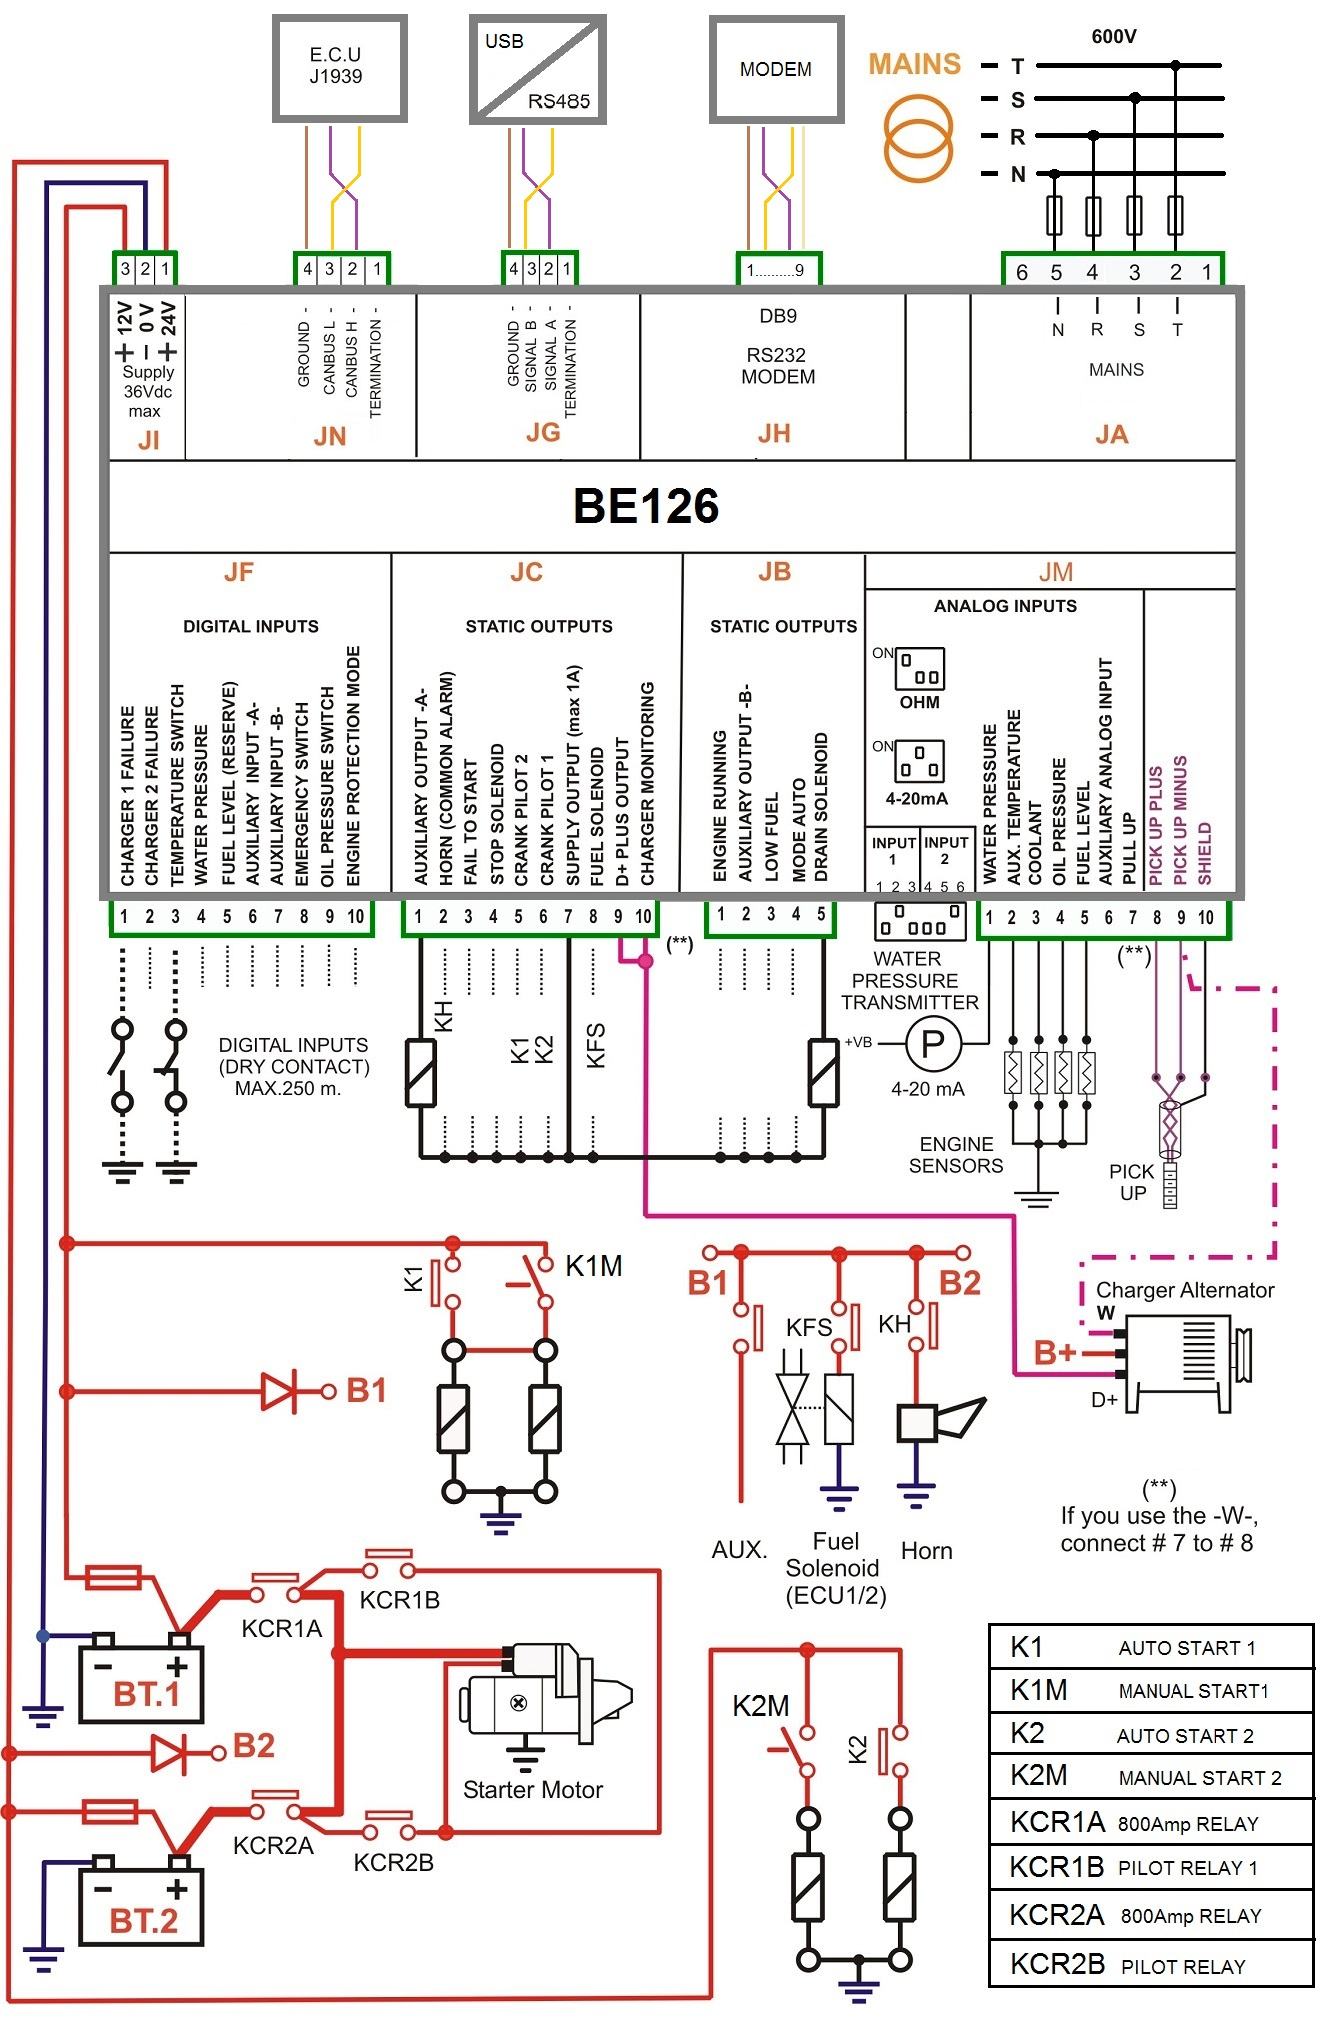 Controller Wiring Diagram Books Of Atlas Fire Pump Genset Rh Bernini Design Com Brake Pid